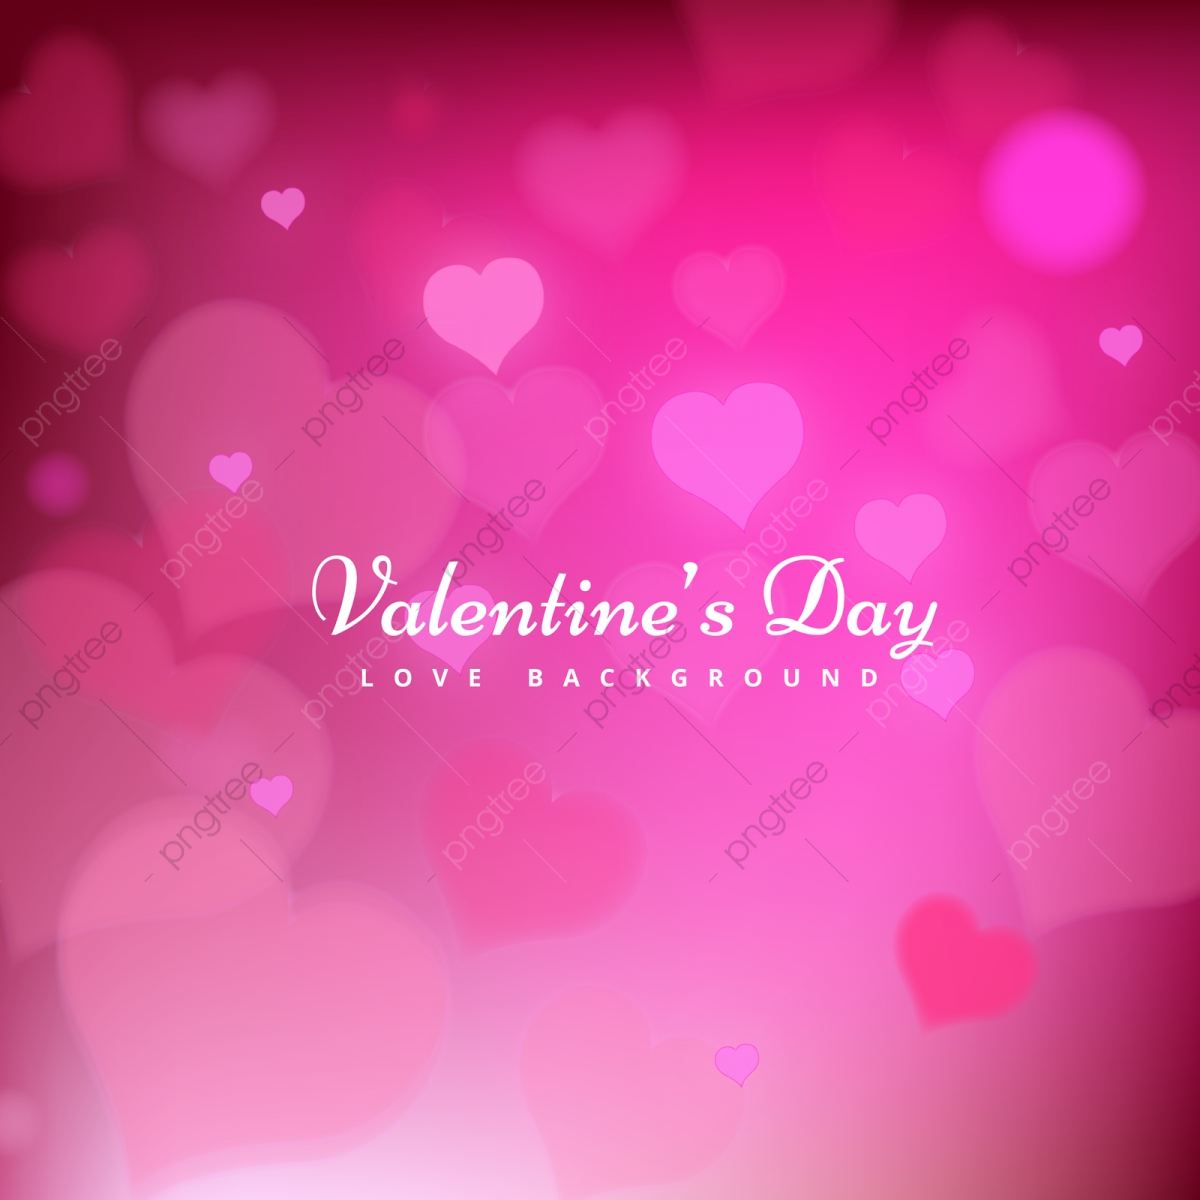 pngtree happy valentines day pink background design png image